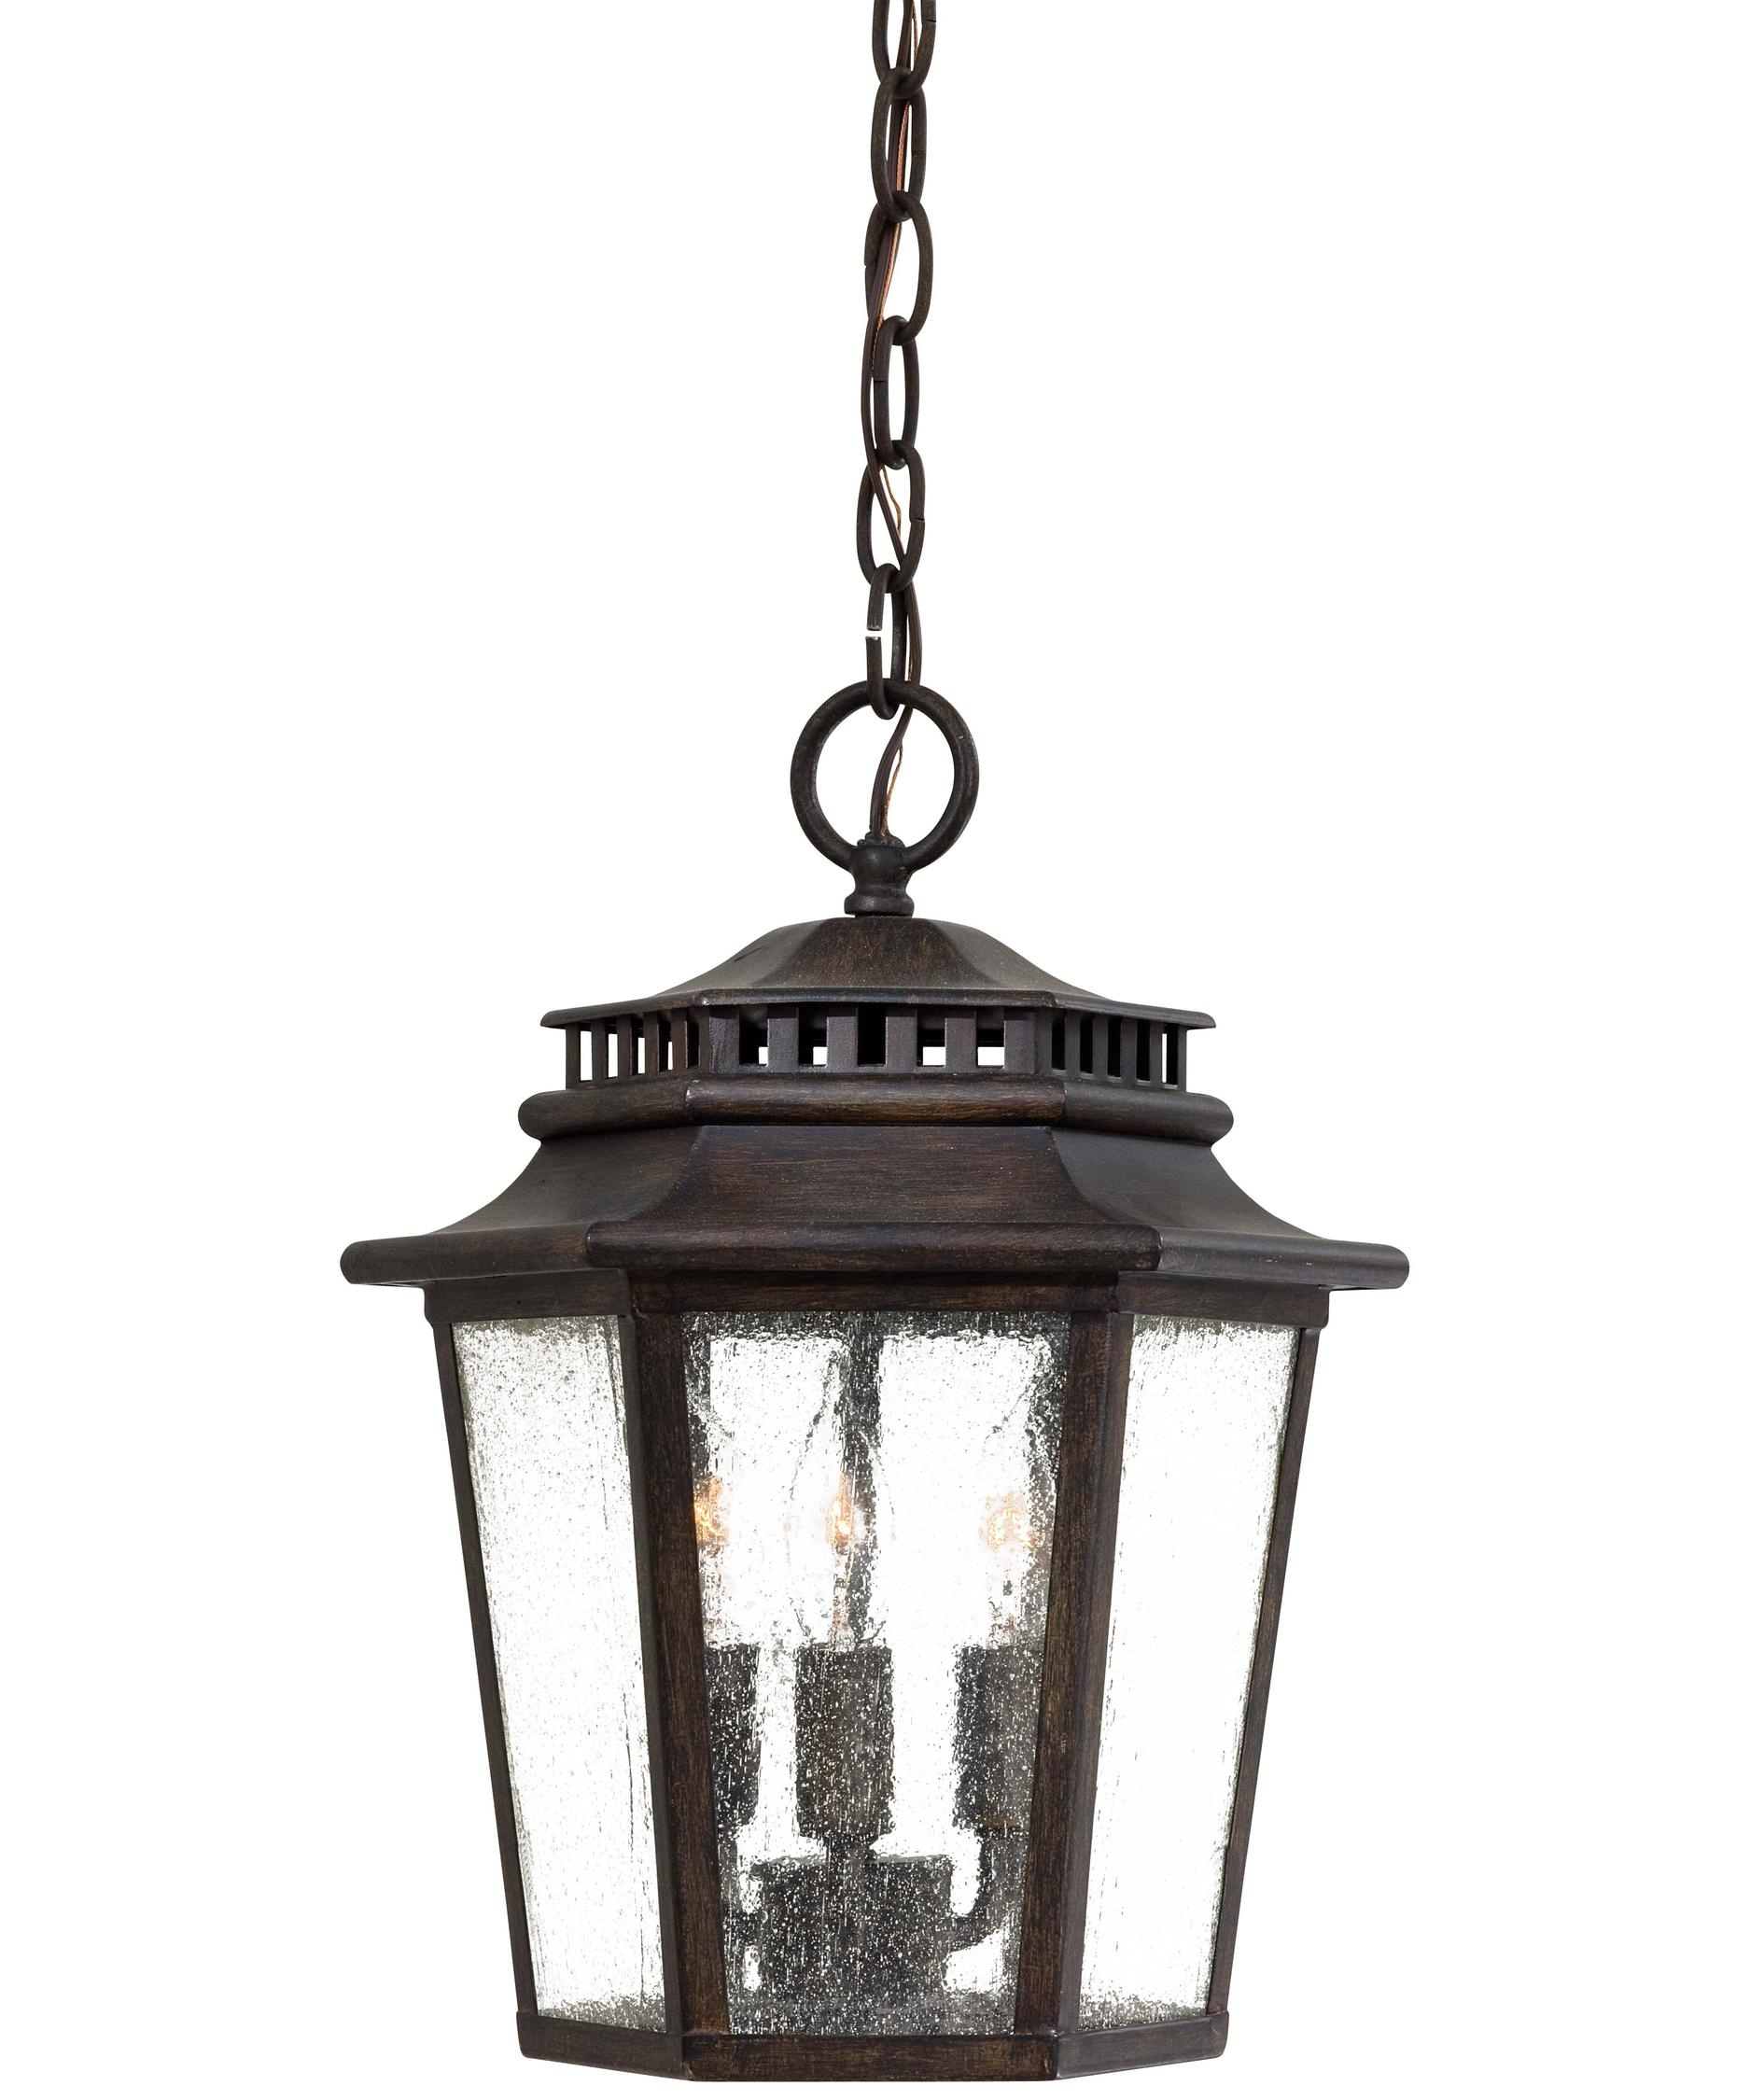 Inspiration about Minka Lavery 8274 Wickford Bay 11 Inch Wide 3 Light Outdoor Hanging For Outdoor Hanging Lighting Fixtures (#1 of 15)